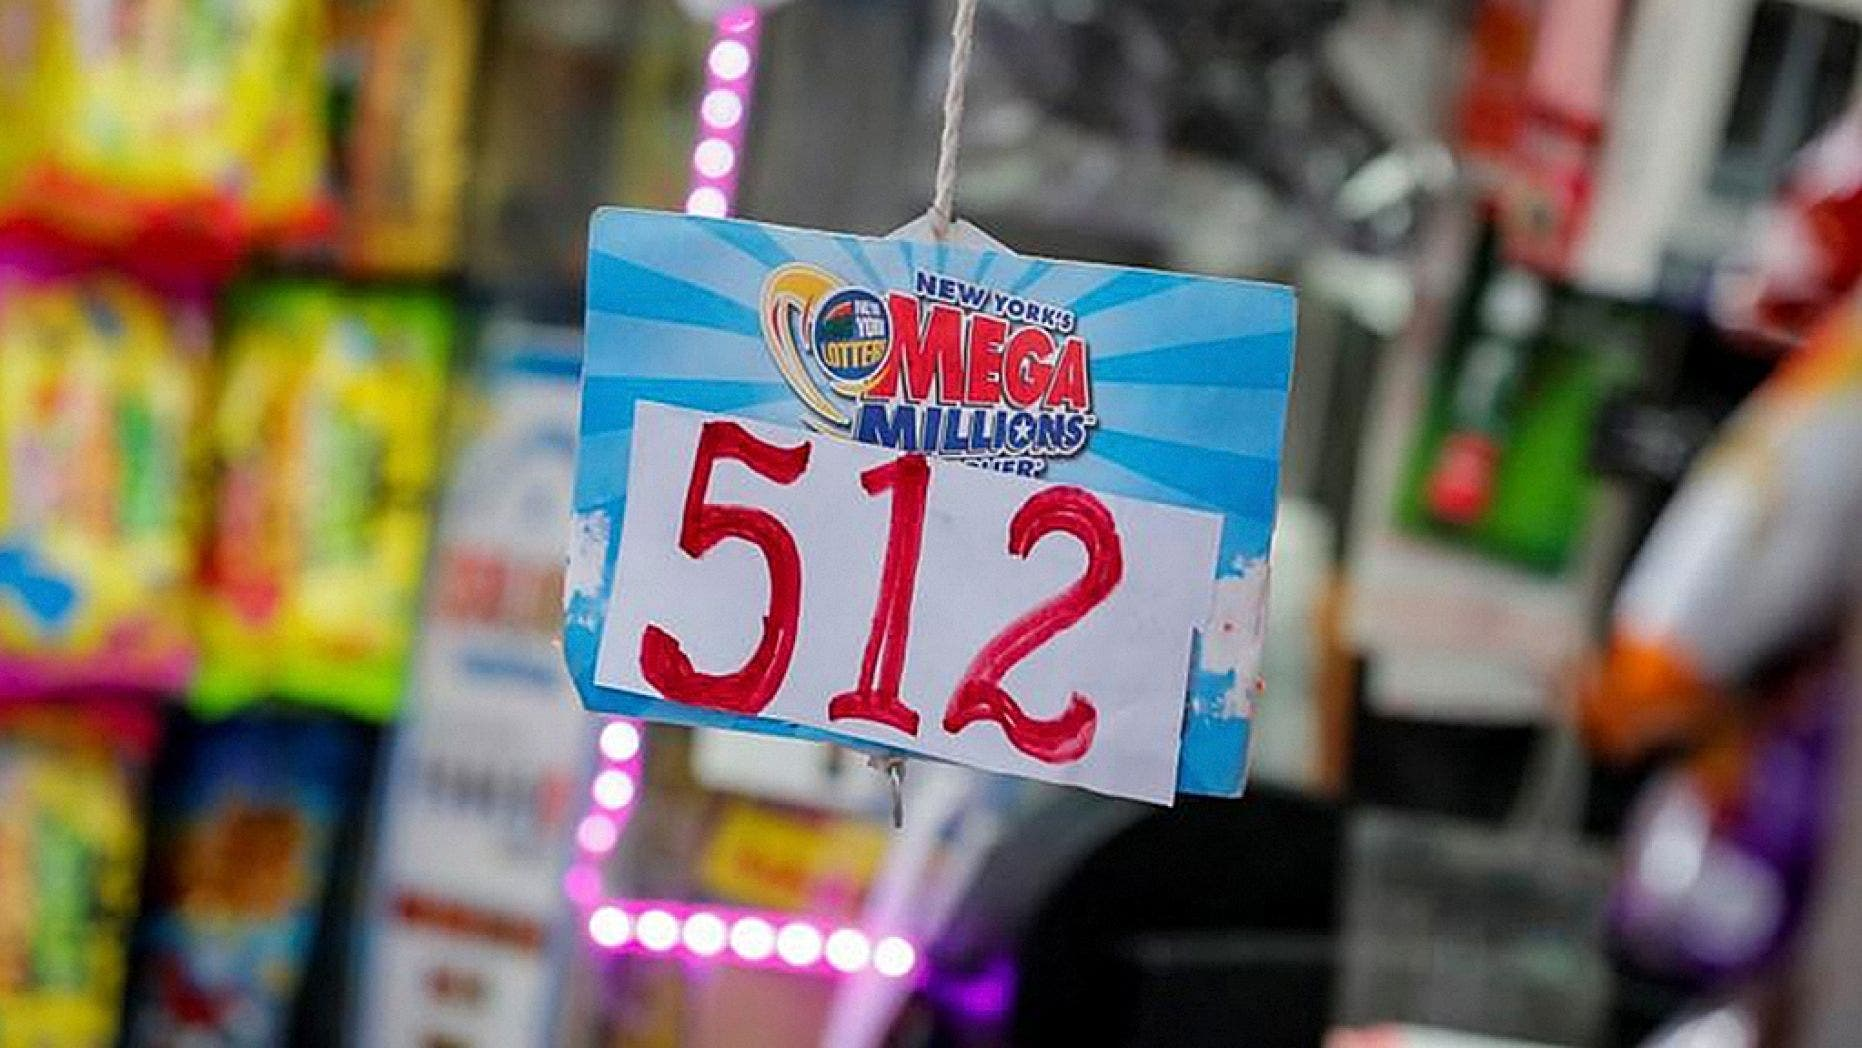 The sixth largest jackpot in Mega Millions history is up for grabs Tuesday night.